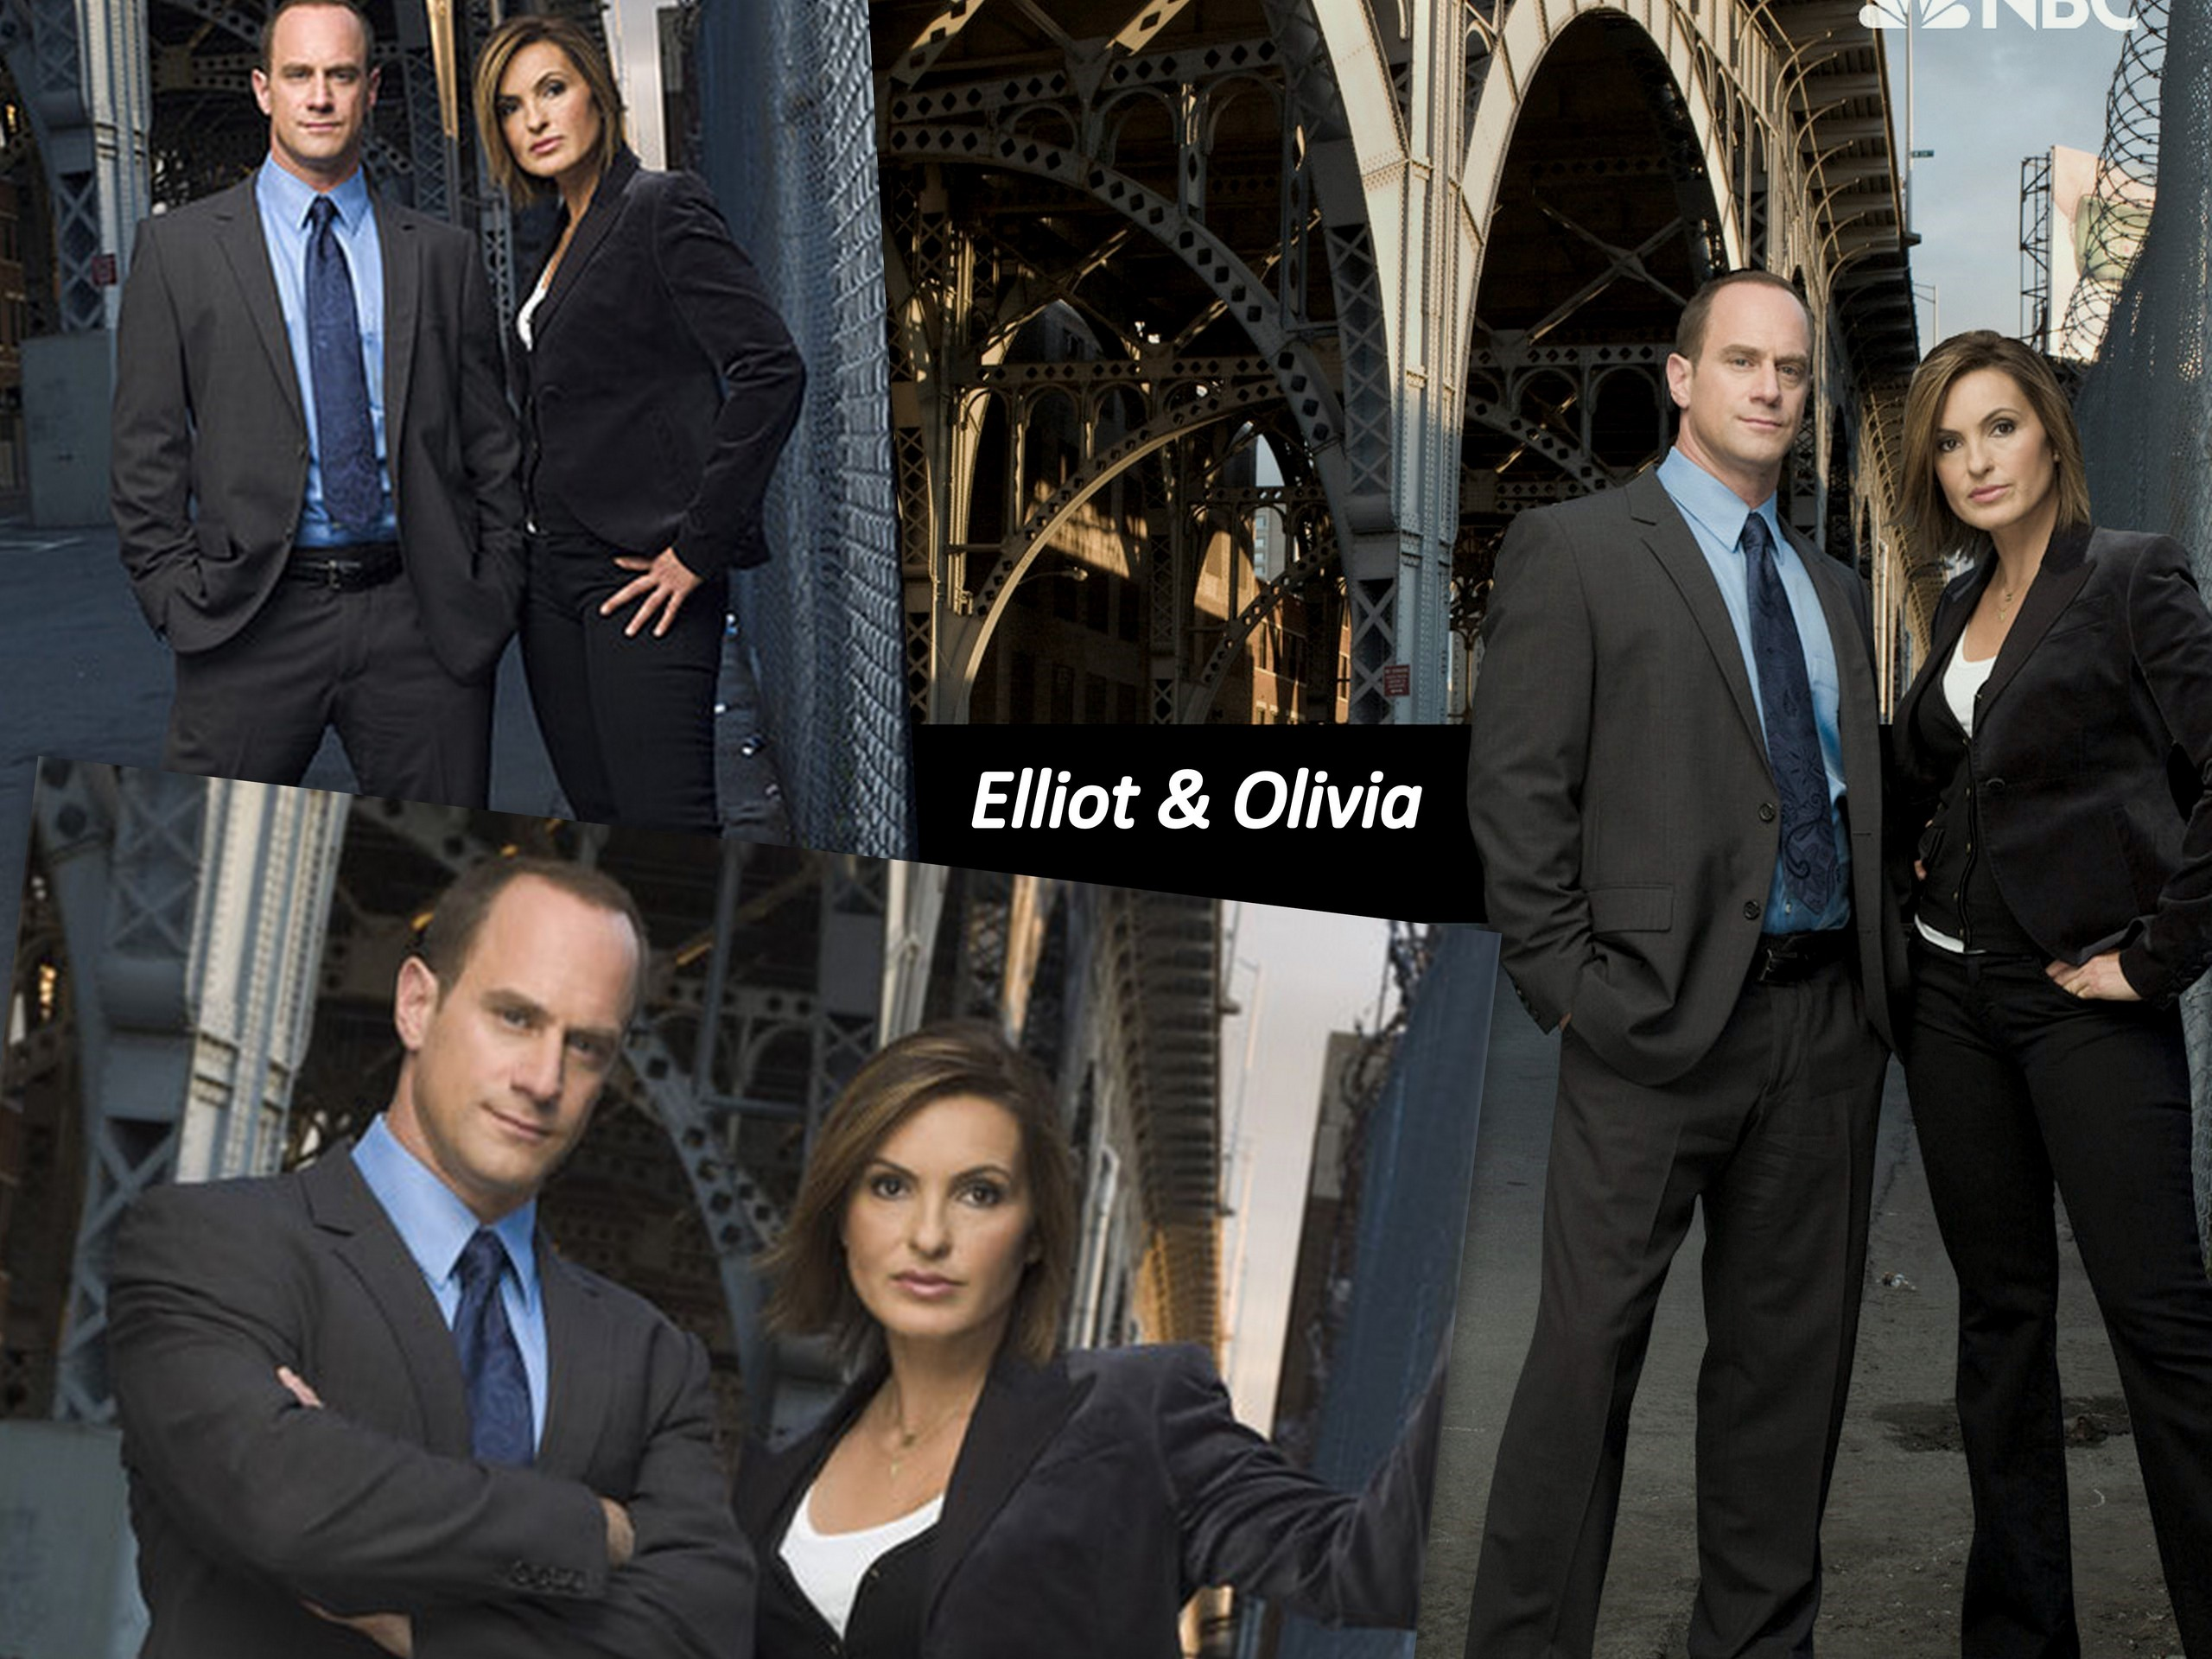 Law and Order SVU images Elliot & Olivia HD wallpaper and background photos